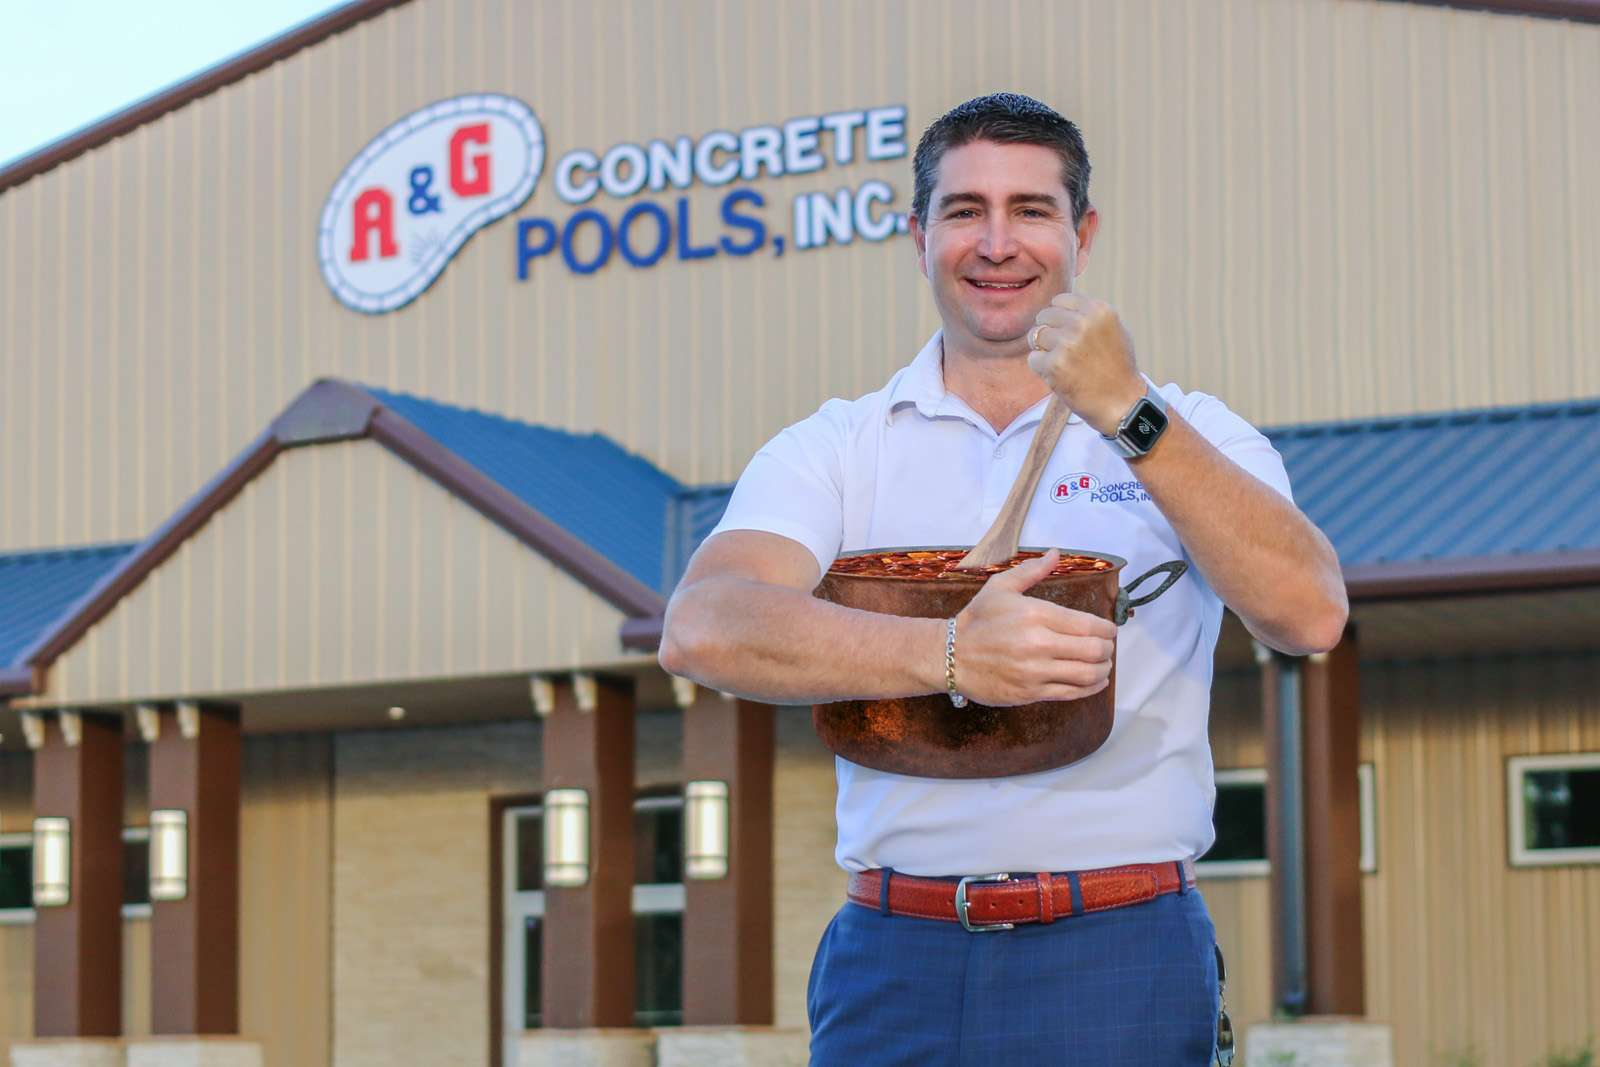 A&G Concrete Pools Stirs The Chili Pot As This Year's Title Sponsor